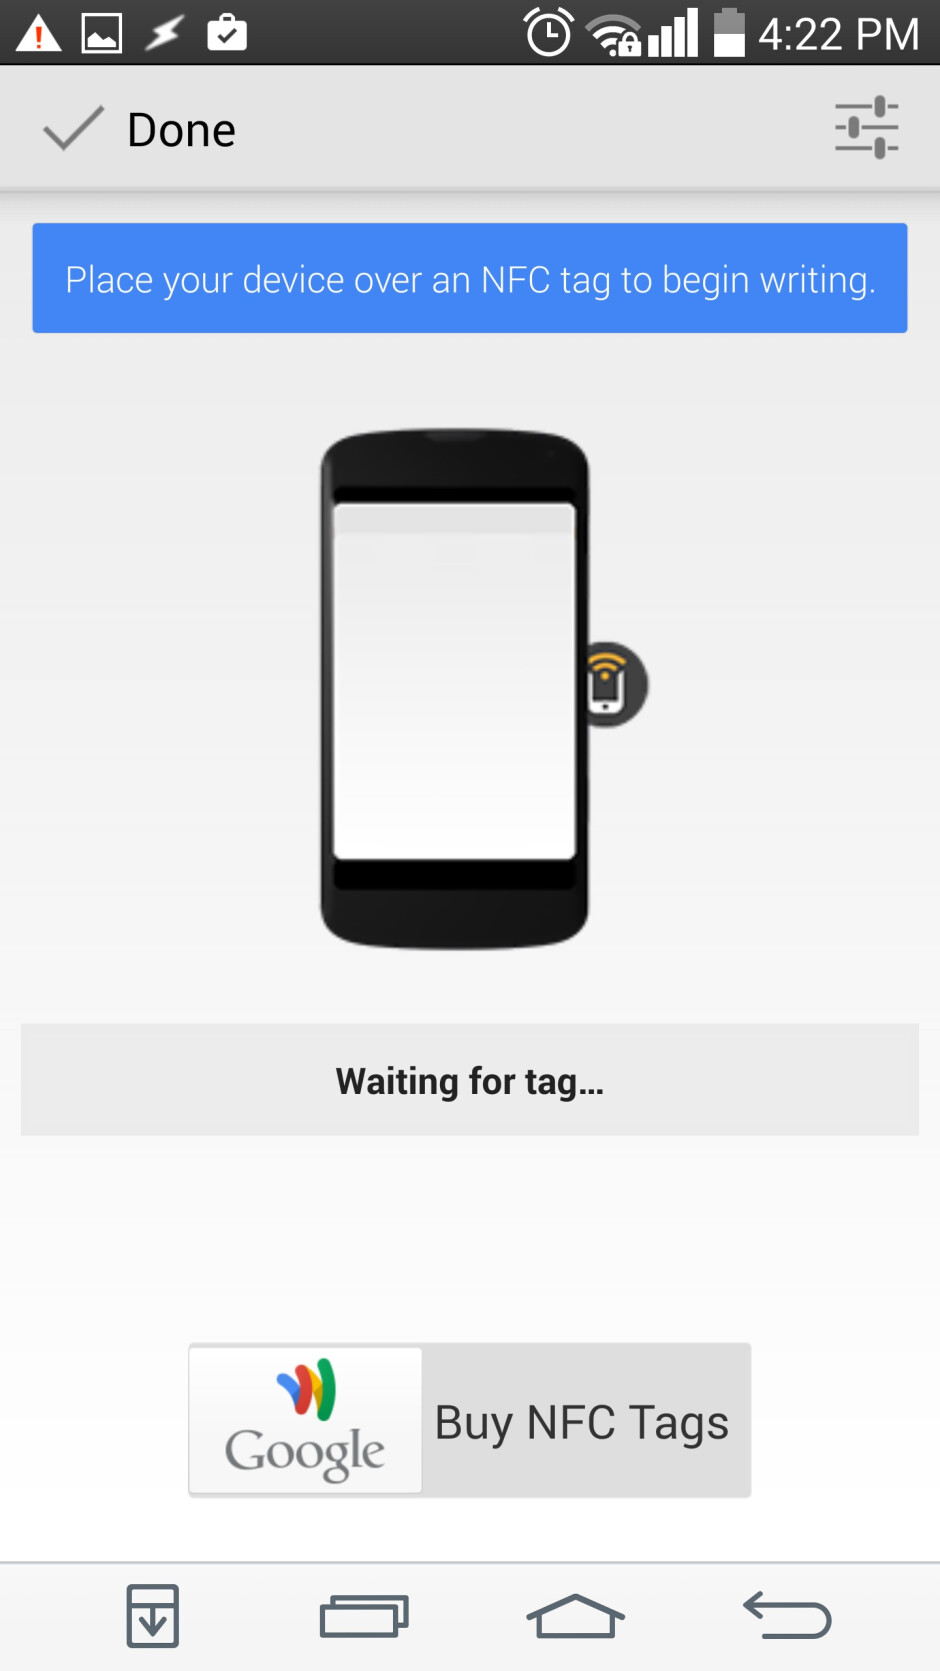 How to use an Android device and NFC tag to turn on a Windows PC